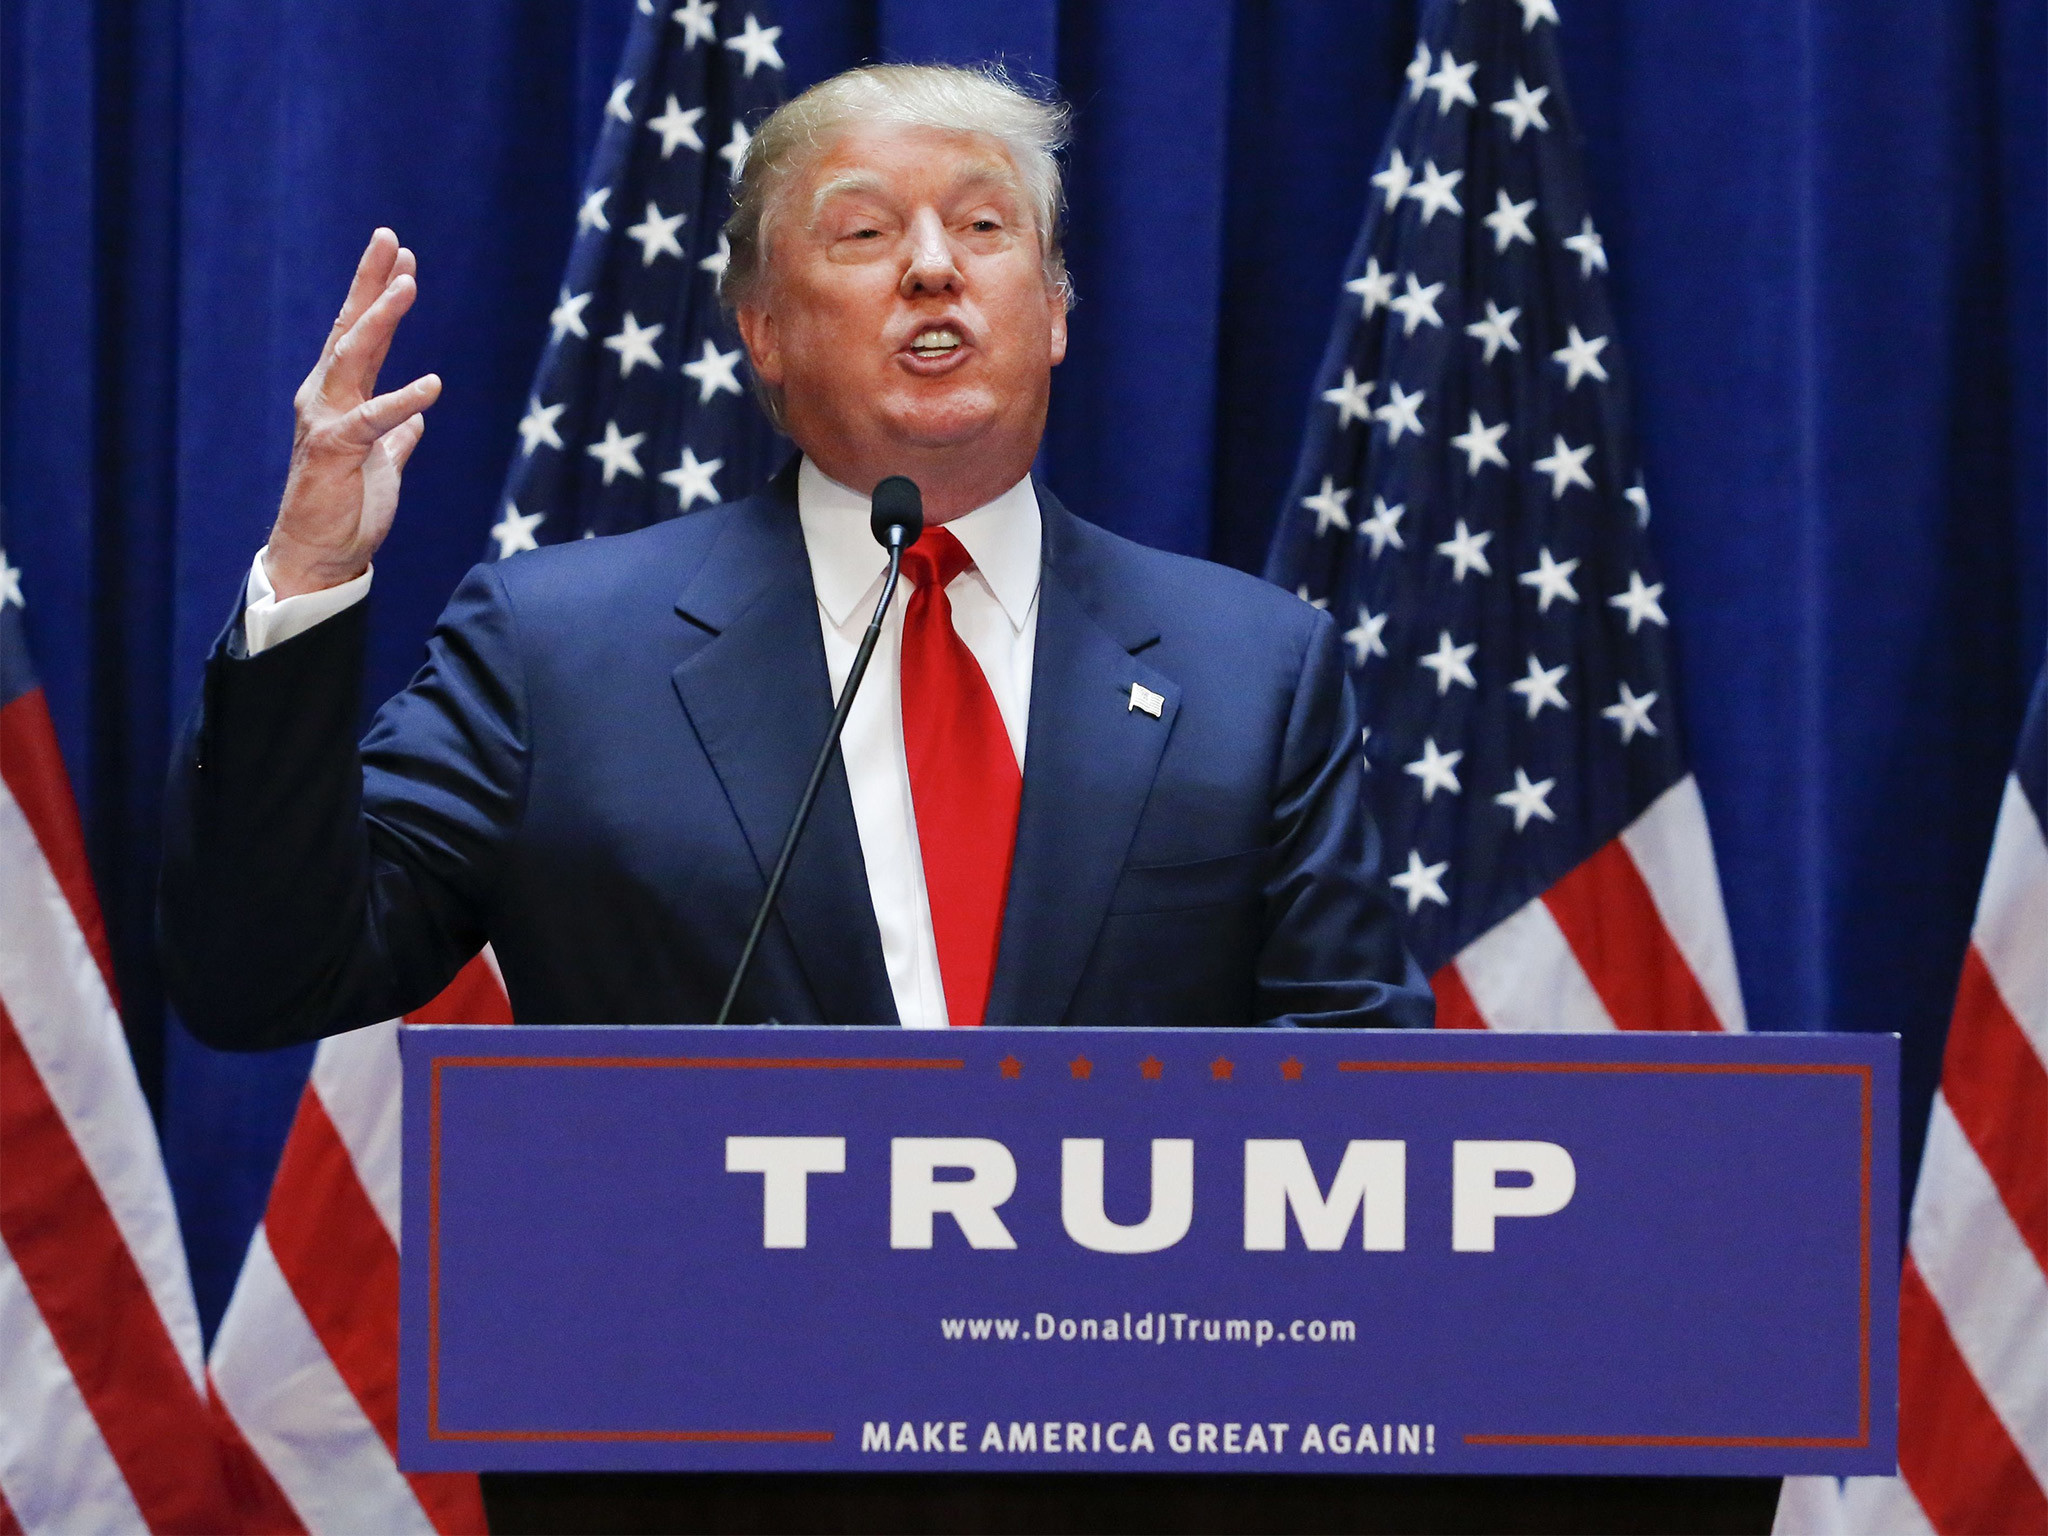 2048x1536 Donald Trump: Business magnate and reality TV star announces he will run  for White House | The Independent